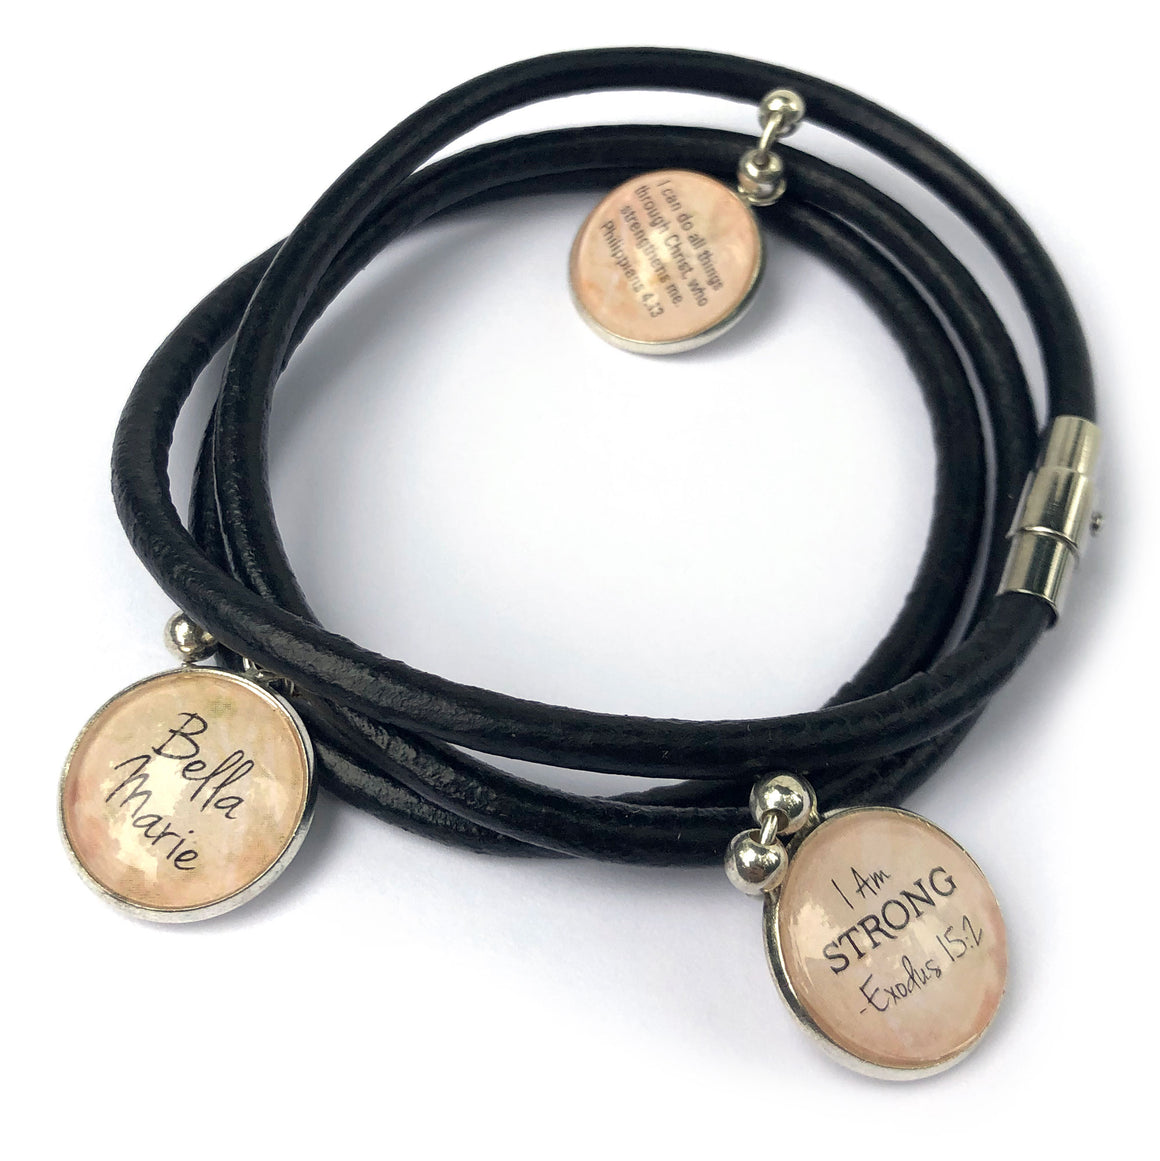 Personalized, I Am Strong, Philippians 4:13, Black Leather Wrap Bracelet with 3 Dangling Charms